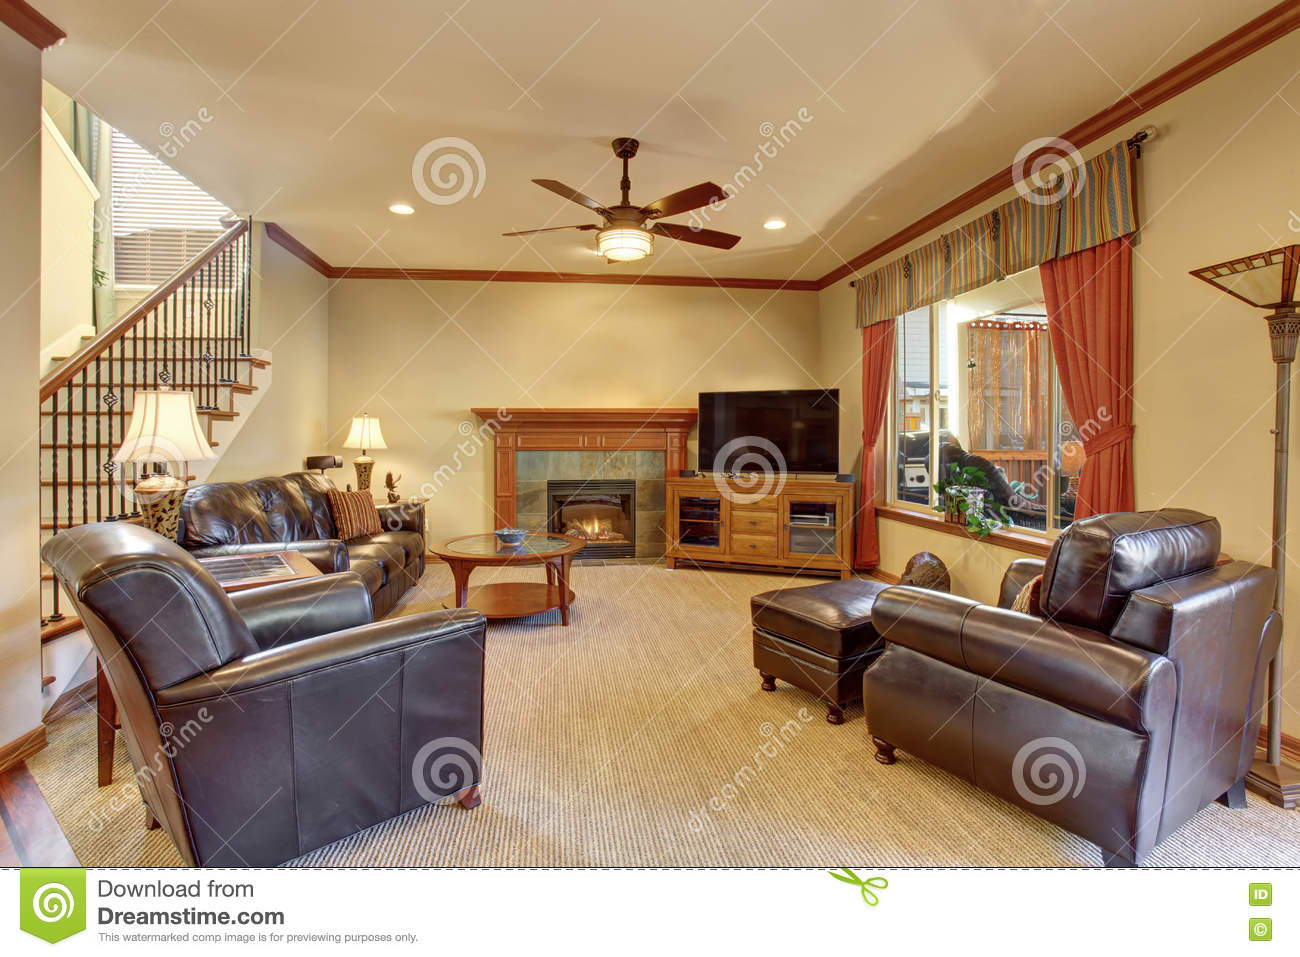 Marvelous Luxury Living Room Interior With Fireplace And Carpet Floor Caraccident5 Cool Chair Designs And Ideas Caraccident5Info